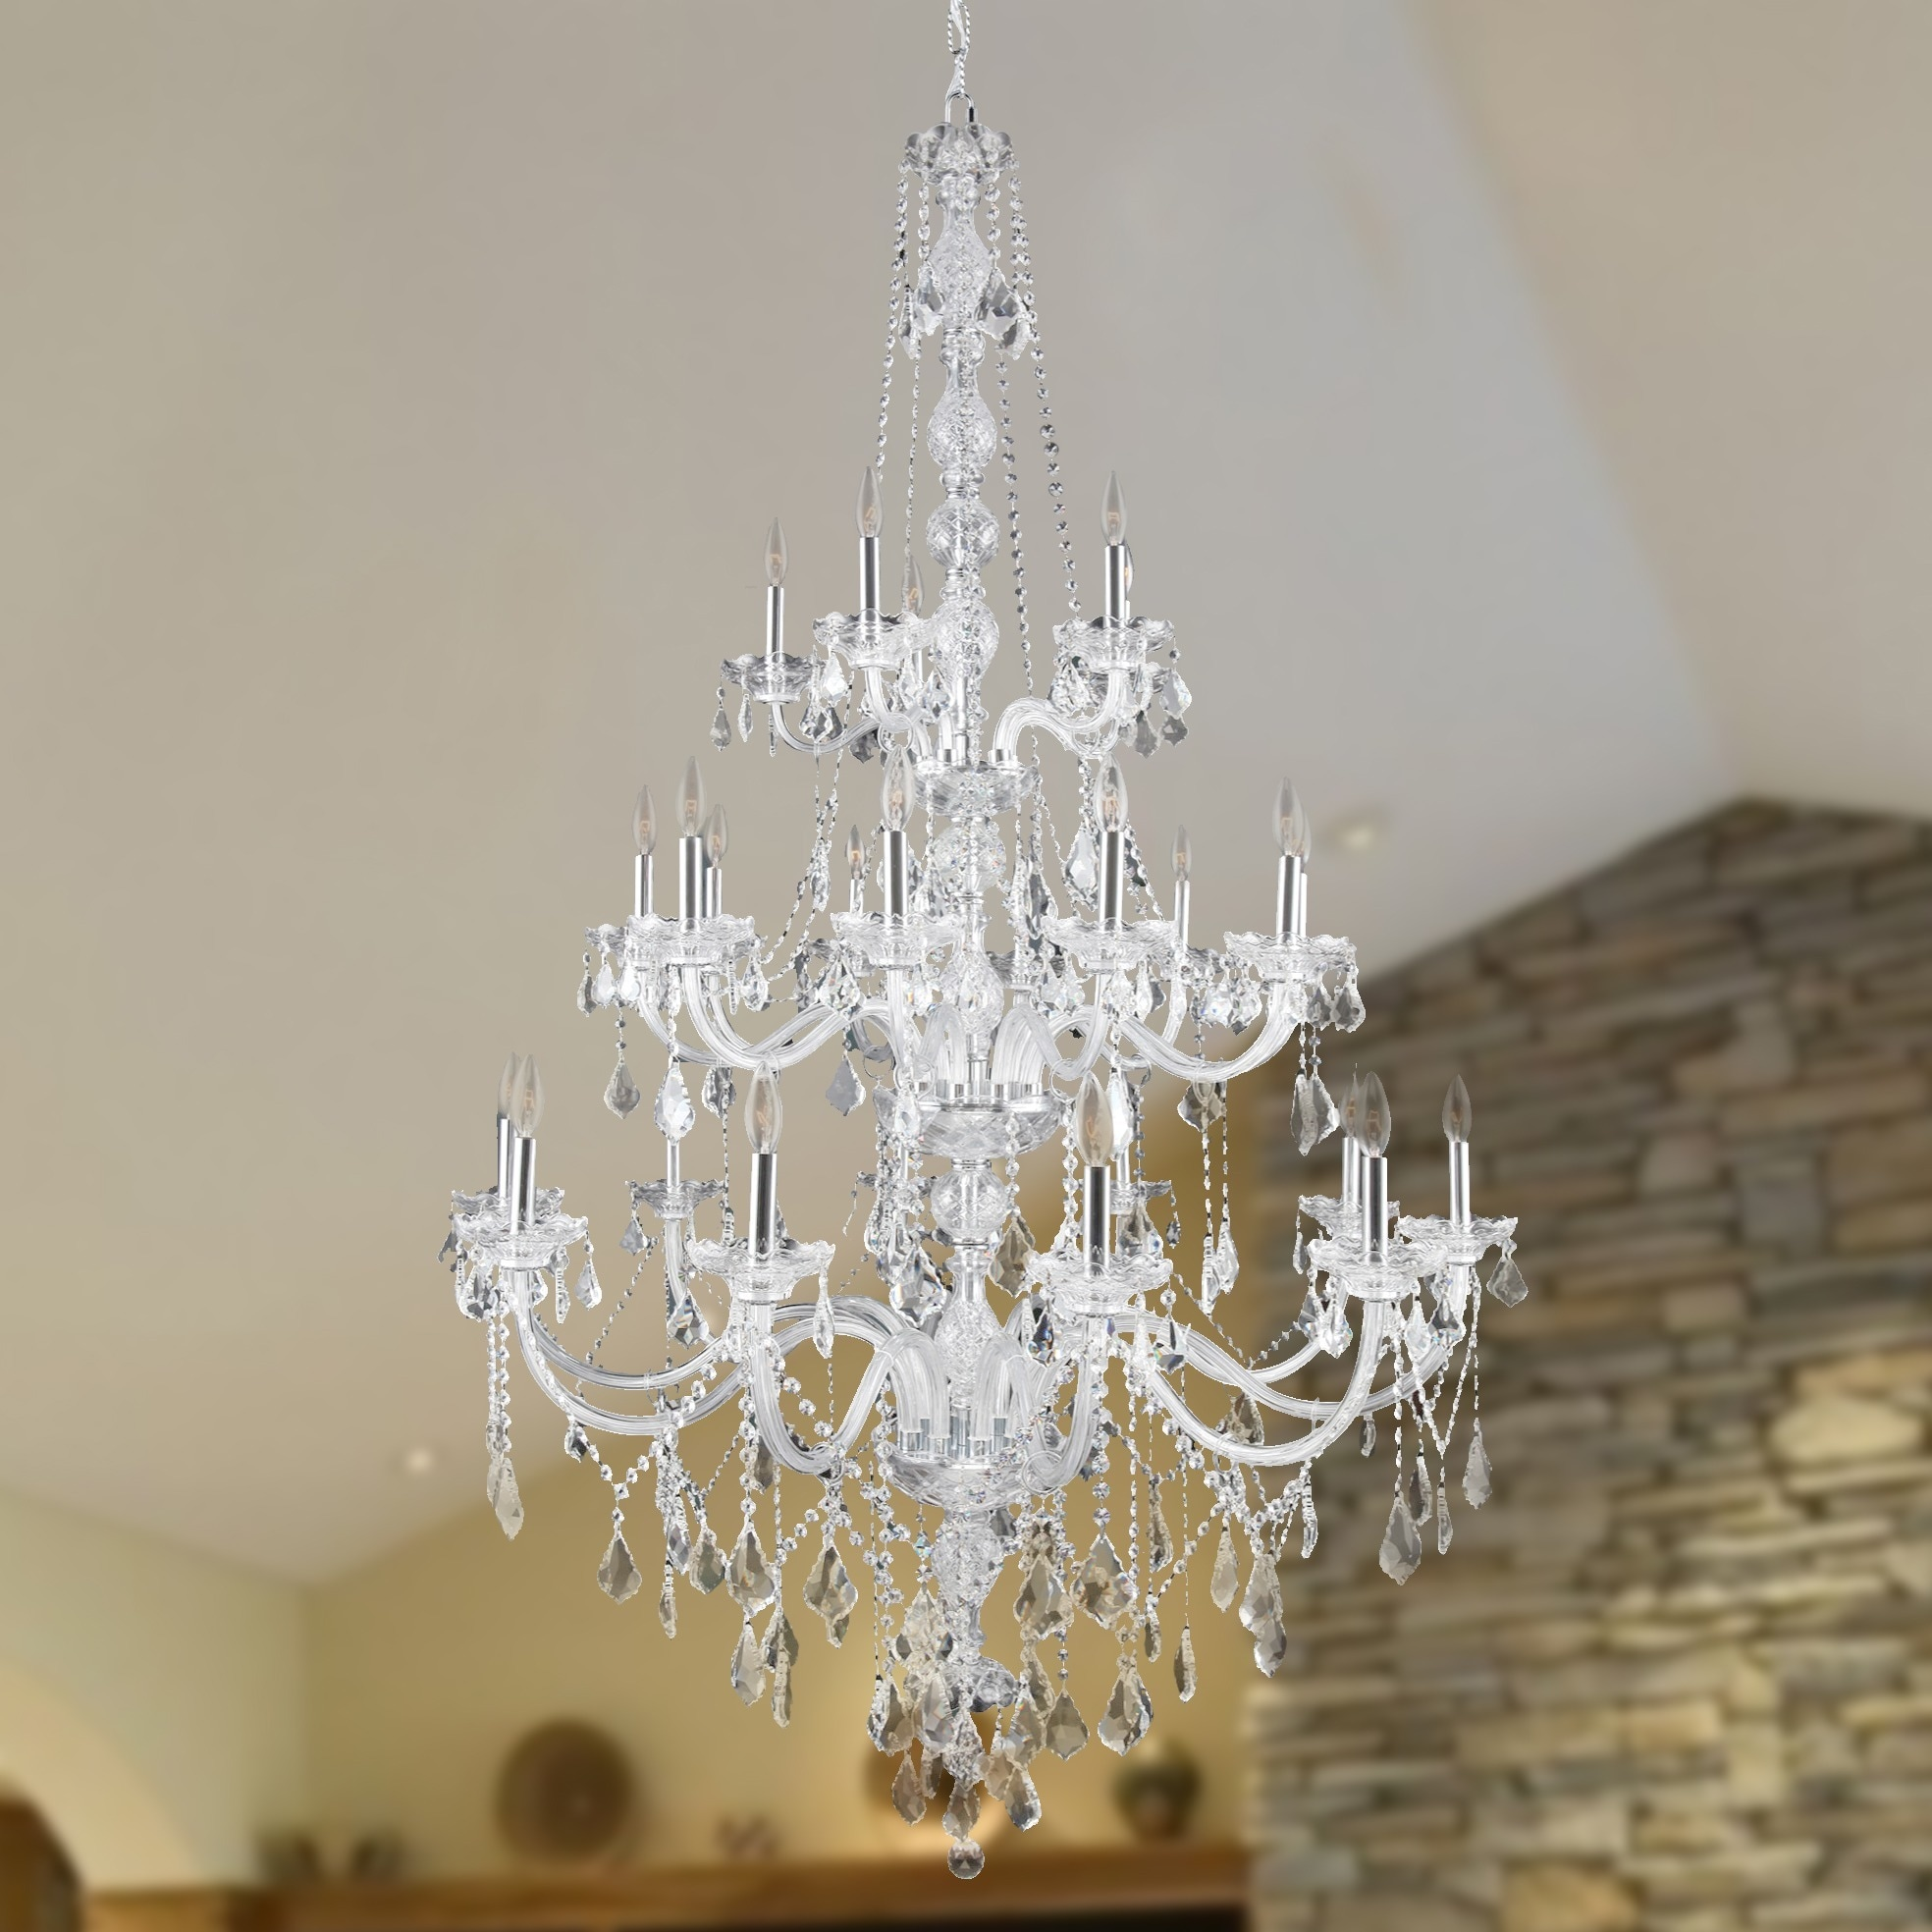 Venetian italian style 25 light chrome finish and clear crystal 3 venetian italian style 25 light chrome finish and clear crystal 3 tier extra large chandelier free shipping today overstock 17838775 arubaitofo Image collections